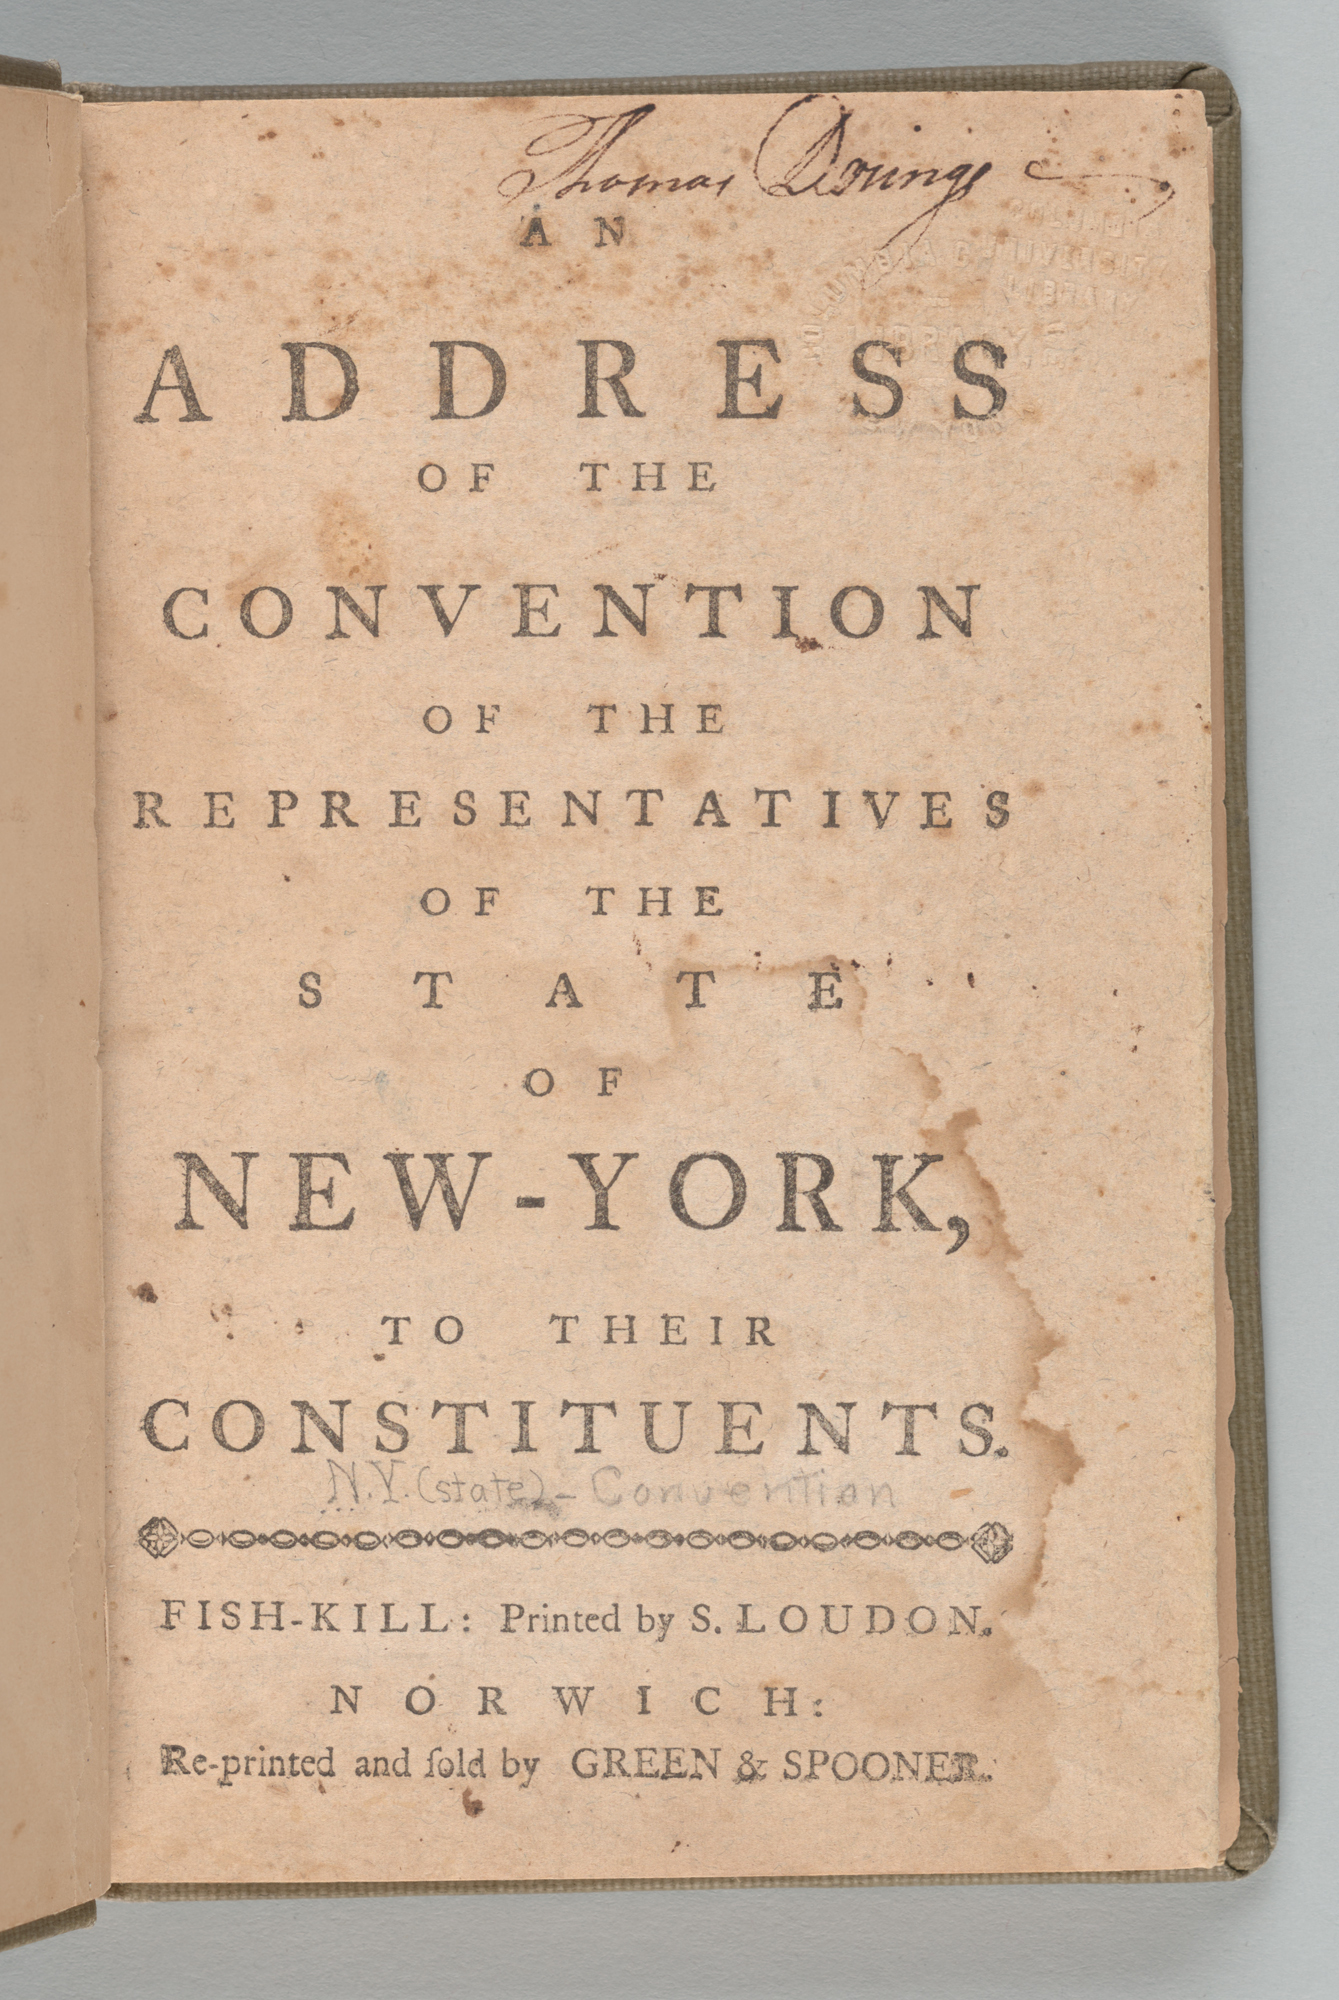 An Address of the Convention of the Representatives of the State of New-York to Their Constituents, title page